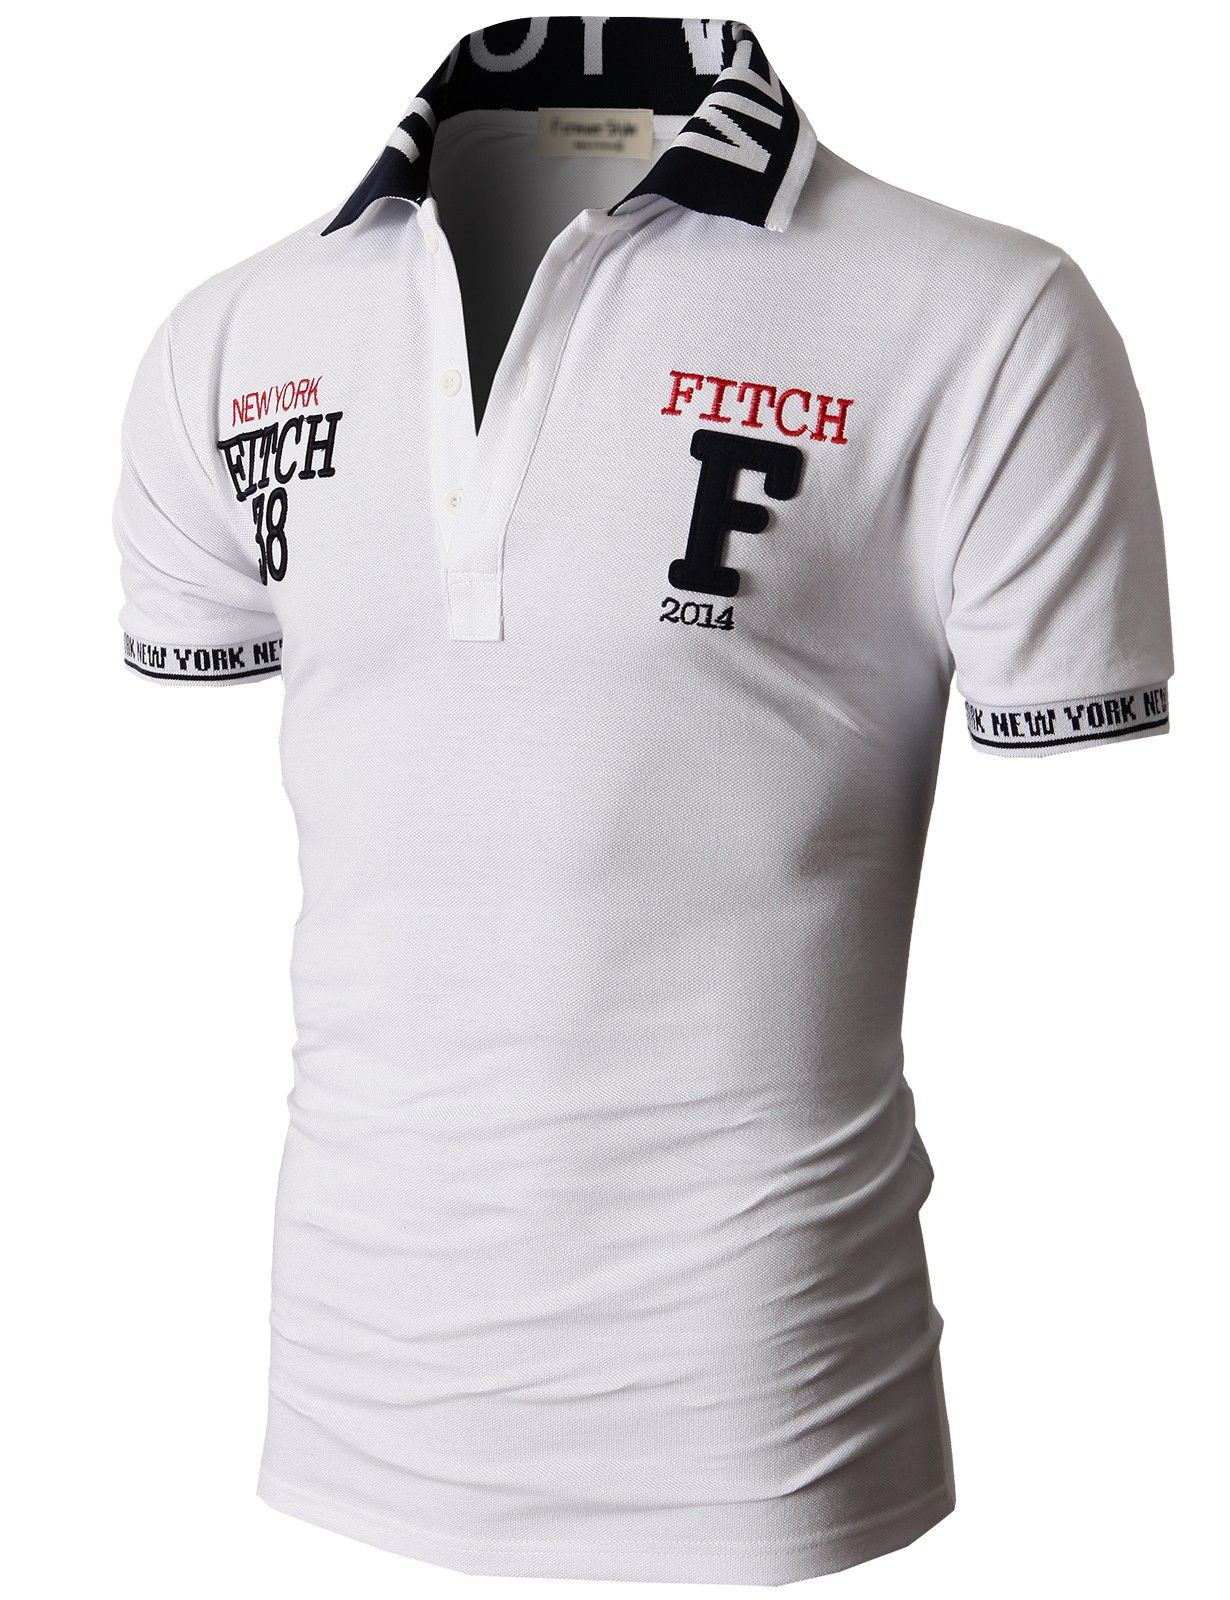 Doublju Fashion Pique Cotton Polo Shirts with Short Sleeve (KMTTS0114)   doublju Camisa Caballero cd4ccb0d0ca1a